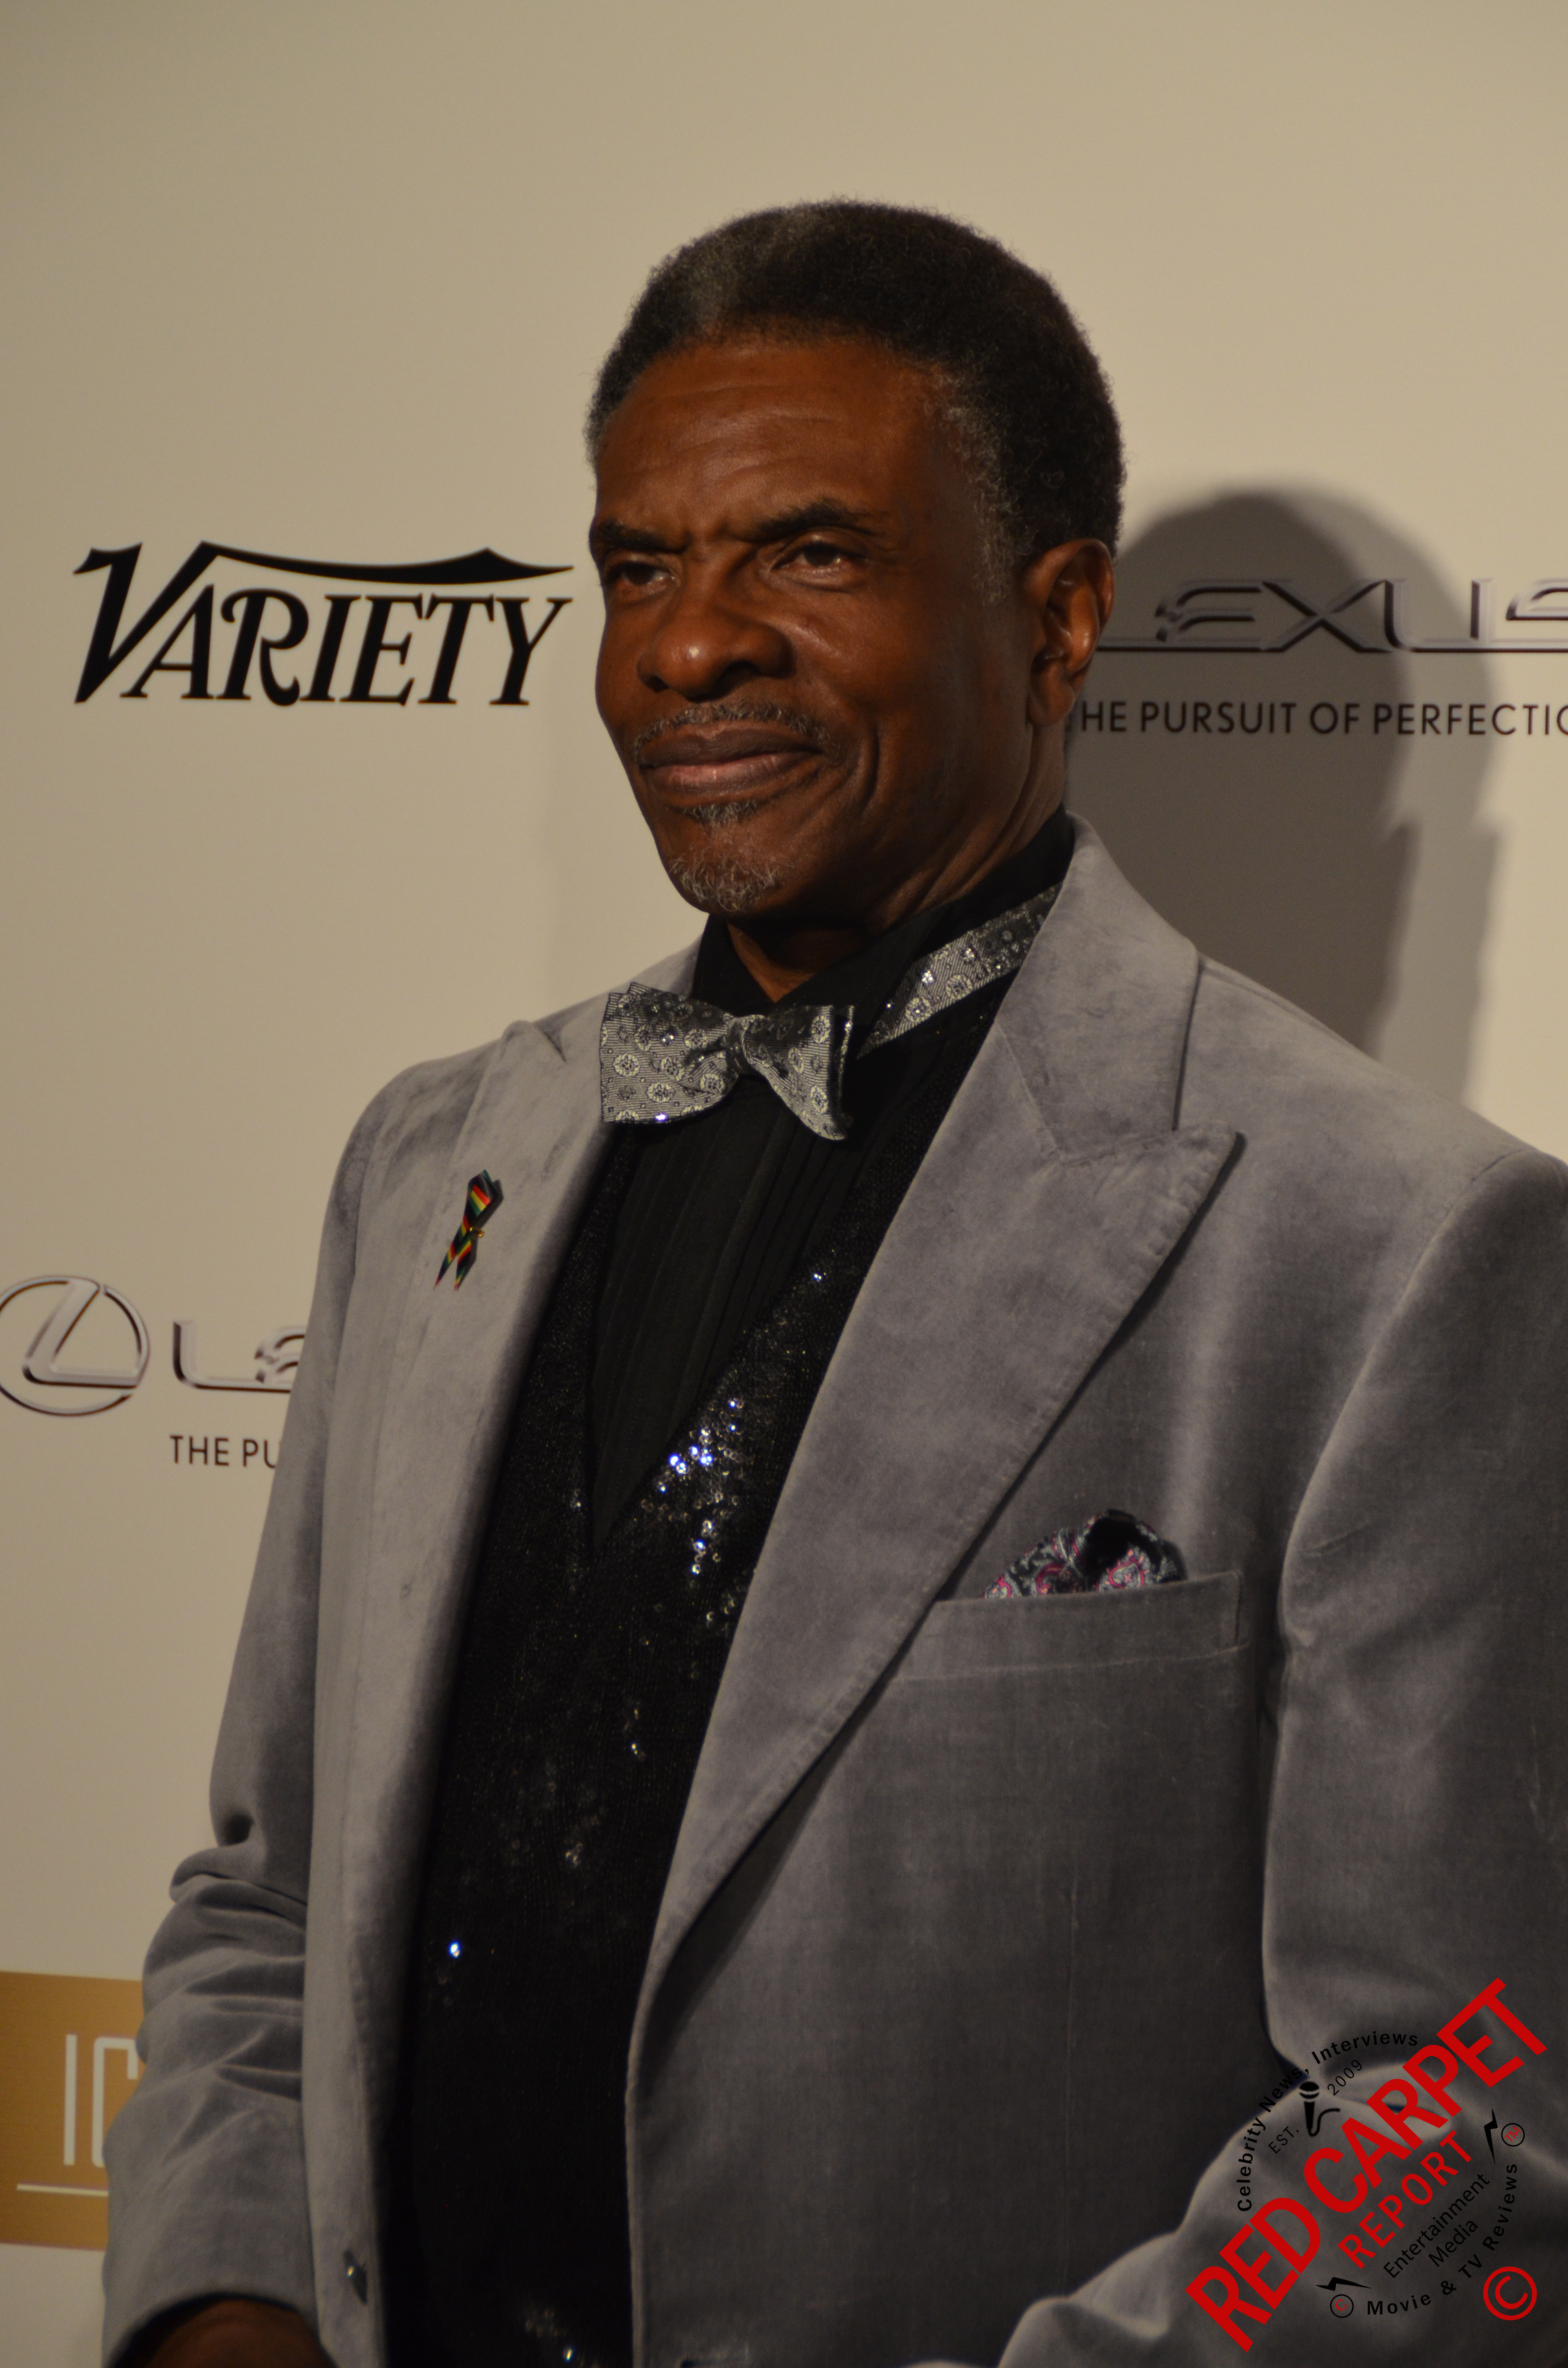 keith david wikikeith david voice, keith david mr robot, keith david height, keith david fight scene, keith david saints row 4, keith david friends on the other side, keith david mass effect, keith david tublat, keith david wikipedia, keith david movies, keith david williams, keith david, keith david imdb, keith david net worth, keith david community, keith david arbiter, keith david halo, keith david wiki, keith david actor, keith david rick and morty